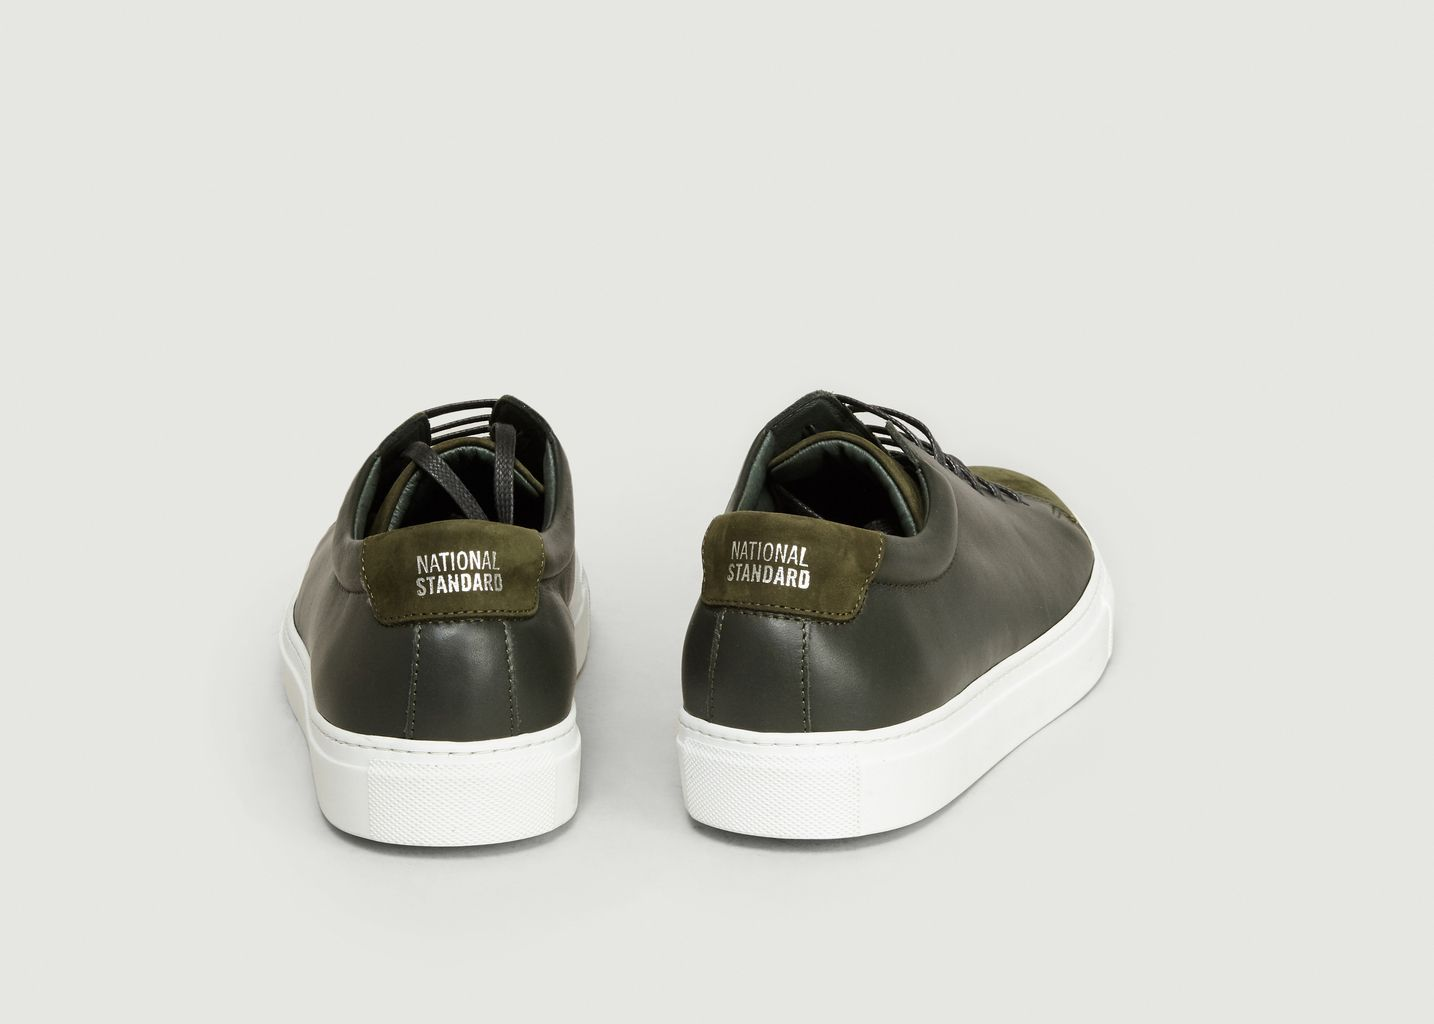 Sneakers Edition 3 - National Standard